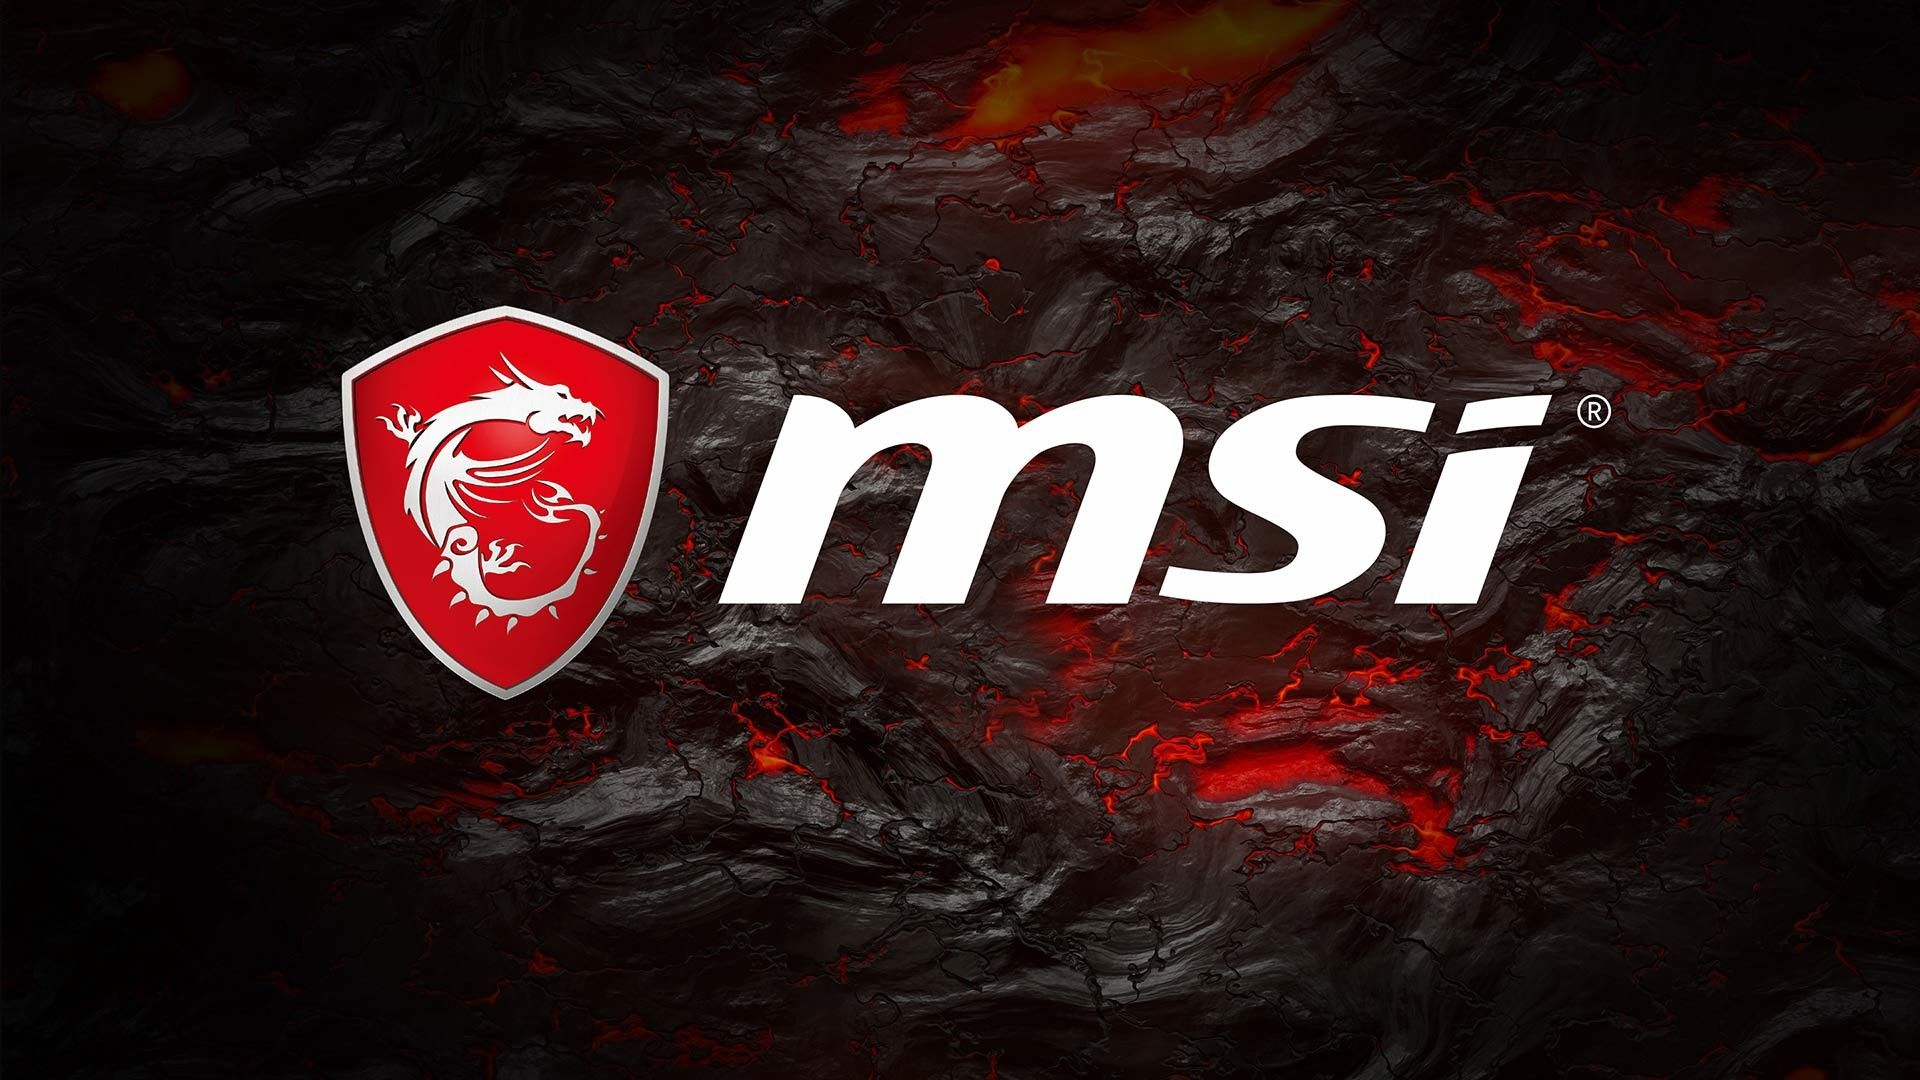 Wallpaper Collection 37 Best Free Hd 1920x1080 Wallpaper Background To Download Pc Mobil In 2020 Msi Logo Gaming Wallpapers Msi